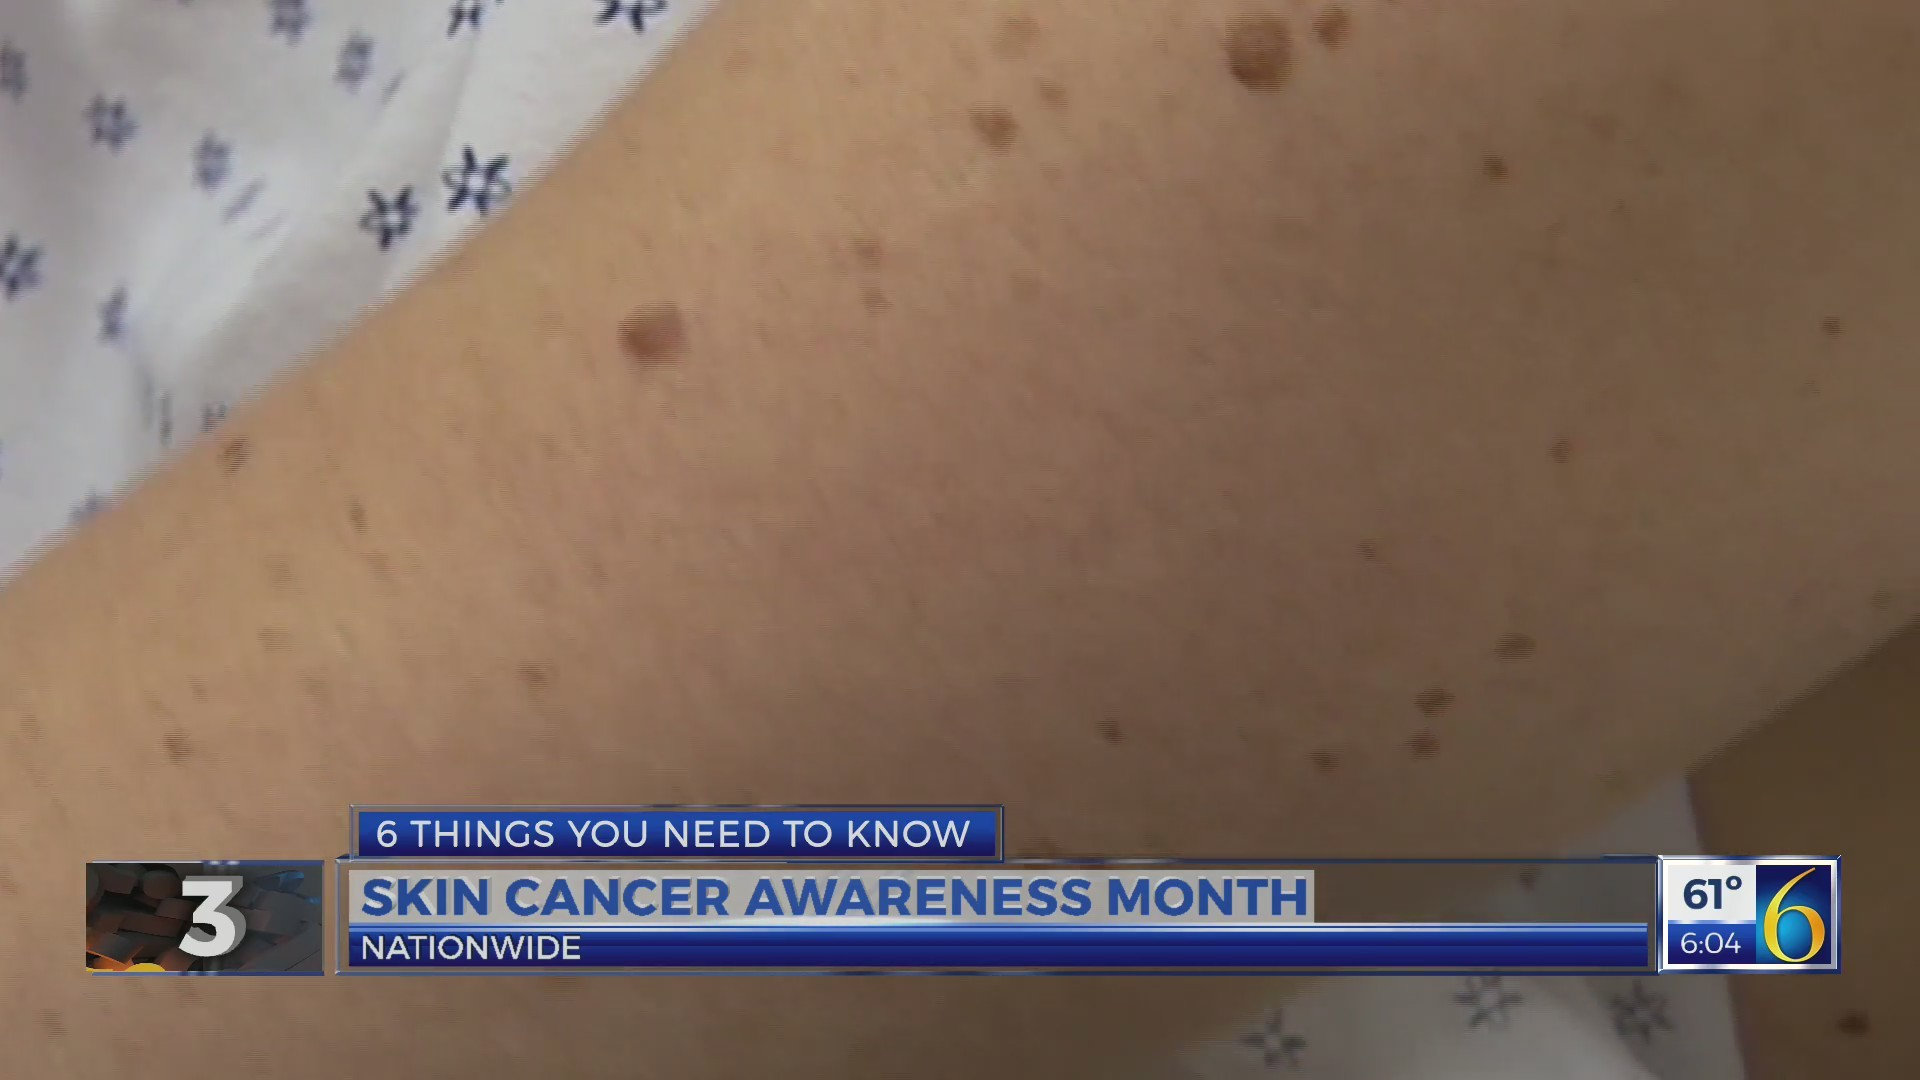 This Morning: Skin Cancer Awareness 1